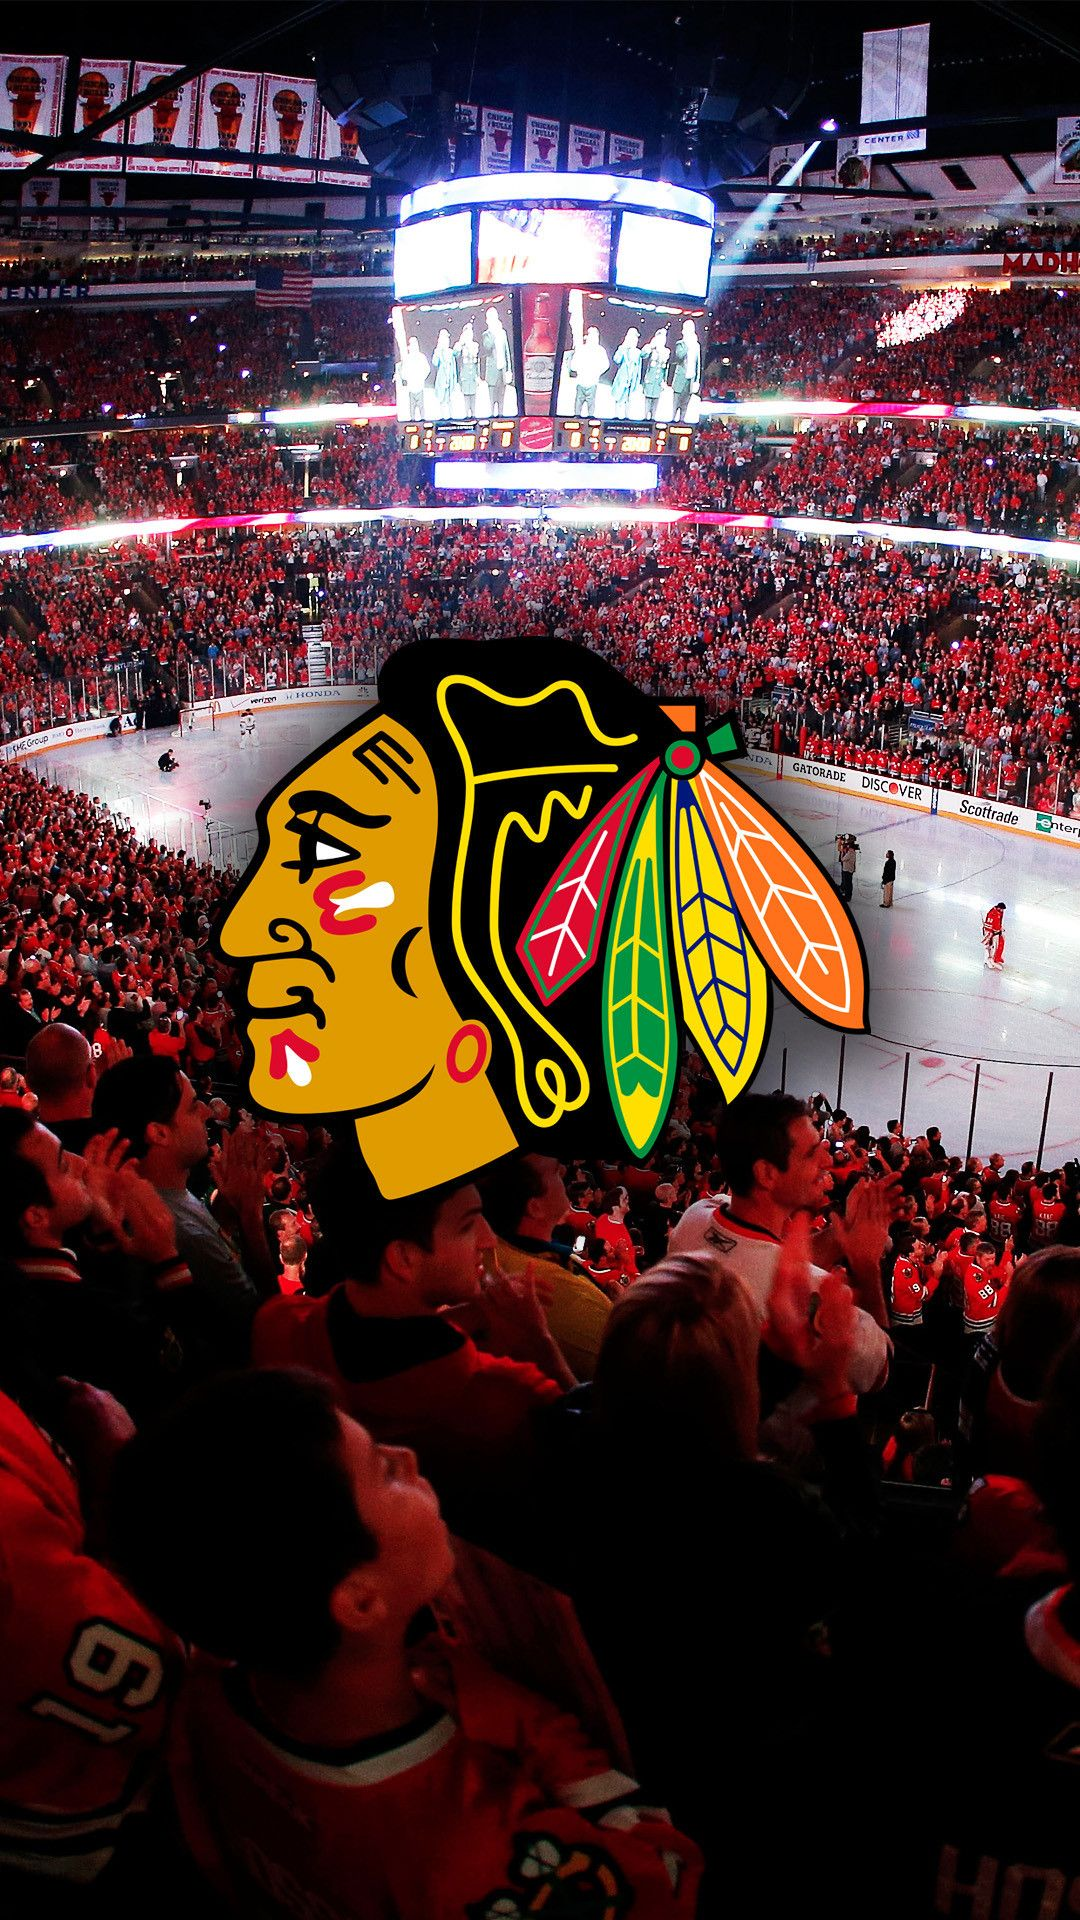 Nhl iphone wallpapers top free nhl iphone backgrounds - Hawk iphone wallpaper ...